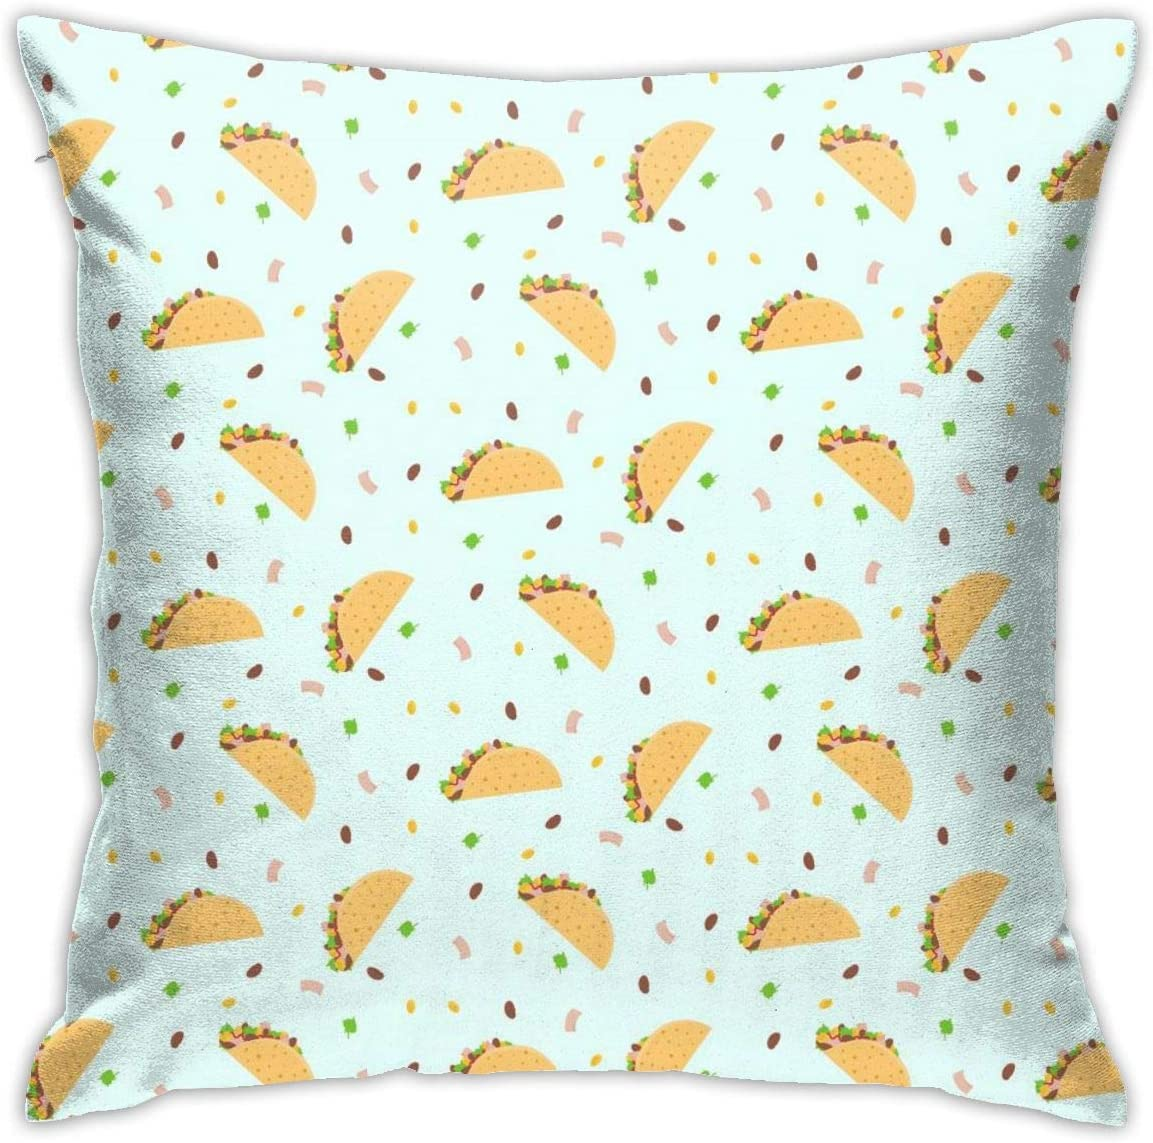 Mexican Food Tacos Throw Pillow Cover 18